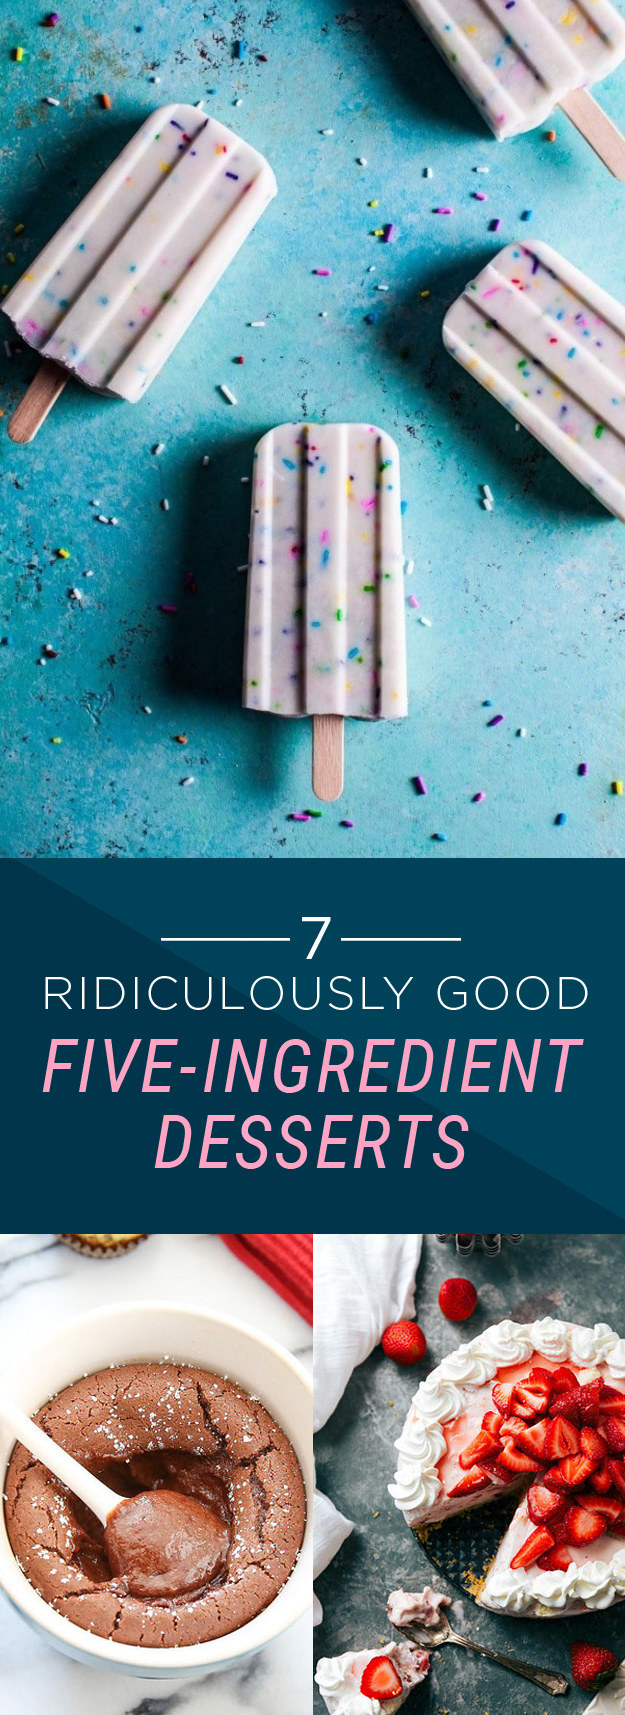 7 Ridiculously Good Five-Ingredient Desserts